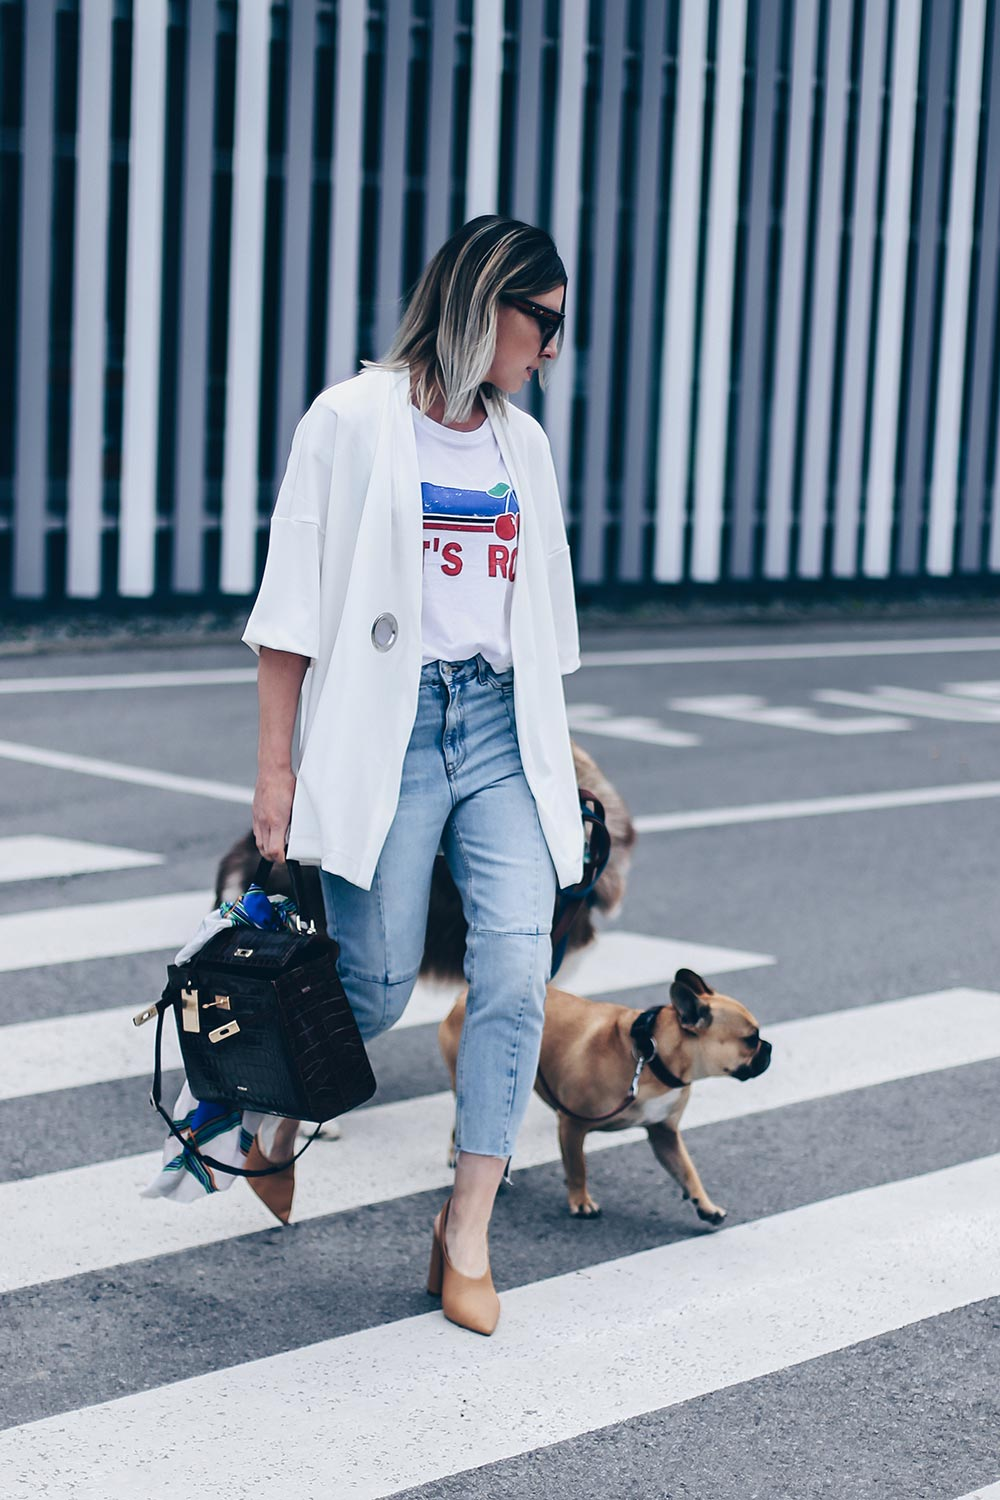 cropped Jeans Outfit, Mom Jeans kombinieren, Jeans Styling Ideen, Picard Tasche, Saint Laurent Tuch, Mango Pumps, Blockabsatz, Print Shirt, Statement Shirt, Kaftan, Kimono stylen, Frühlings Outfit, Modeblog, Fashion Blog, Style Blog, Outfit Blog, www.whoismocca.com